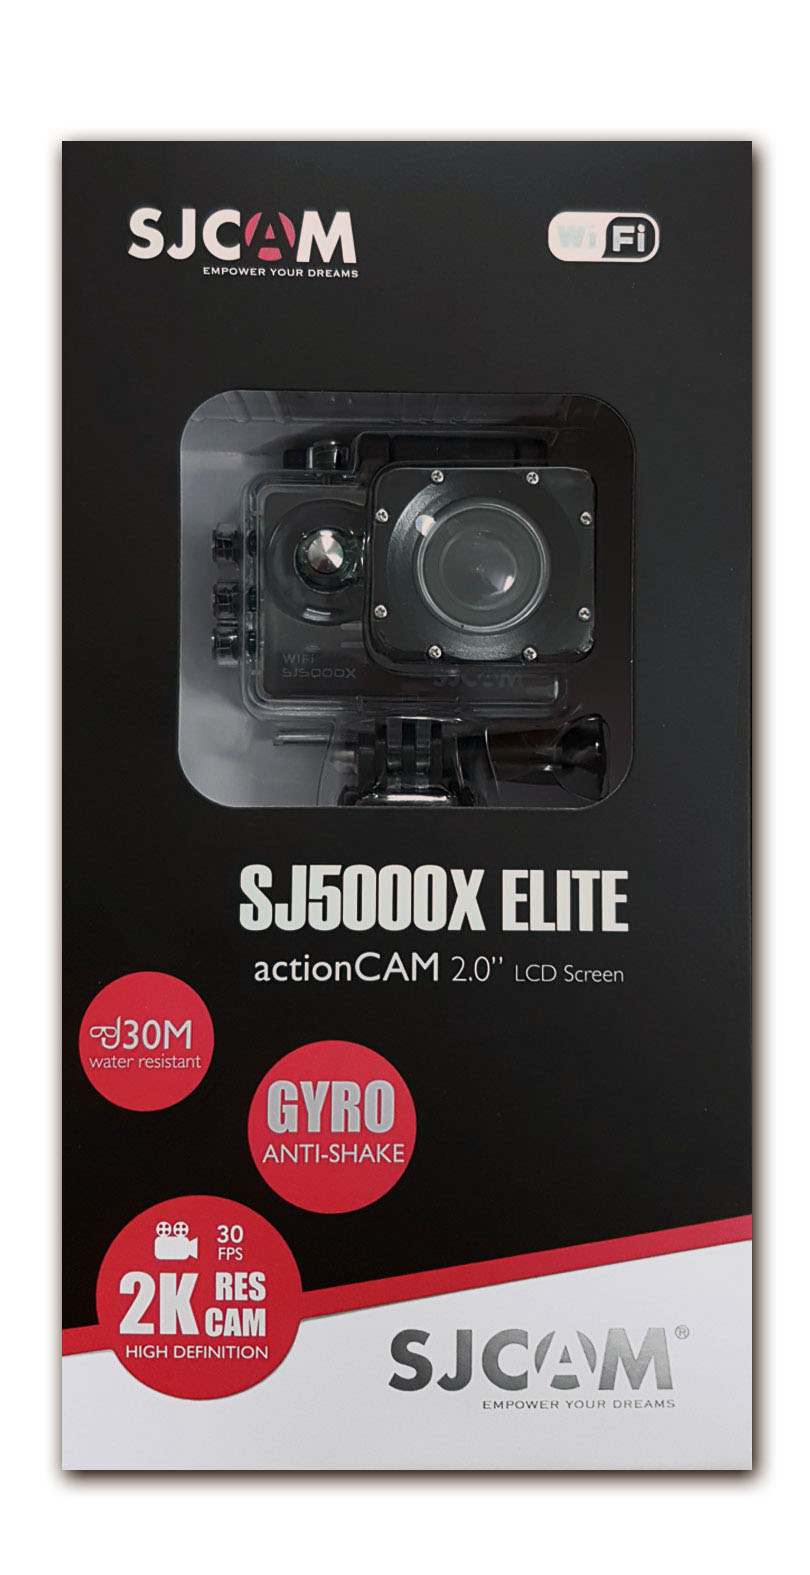 Box of SJ5000x Elite